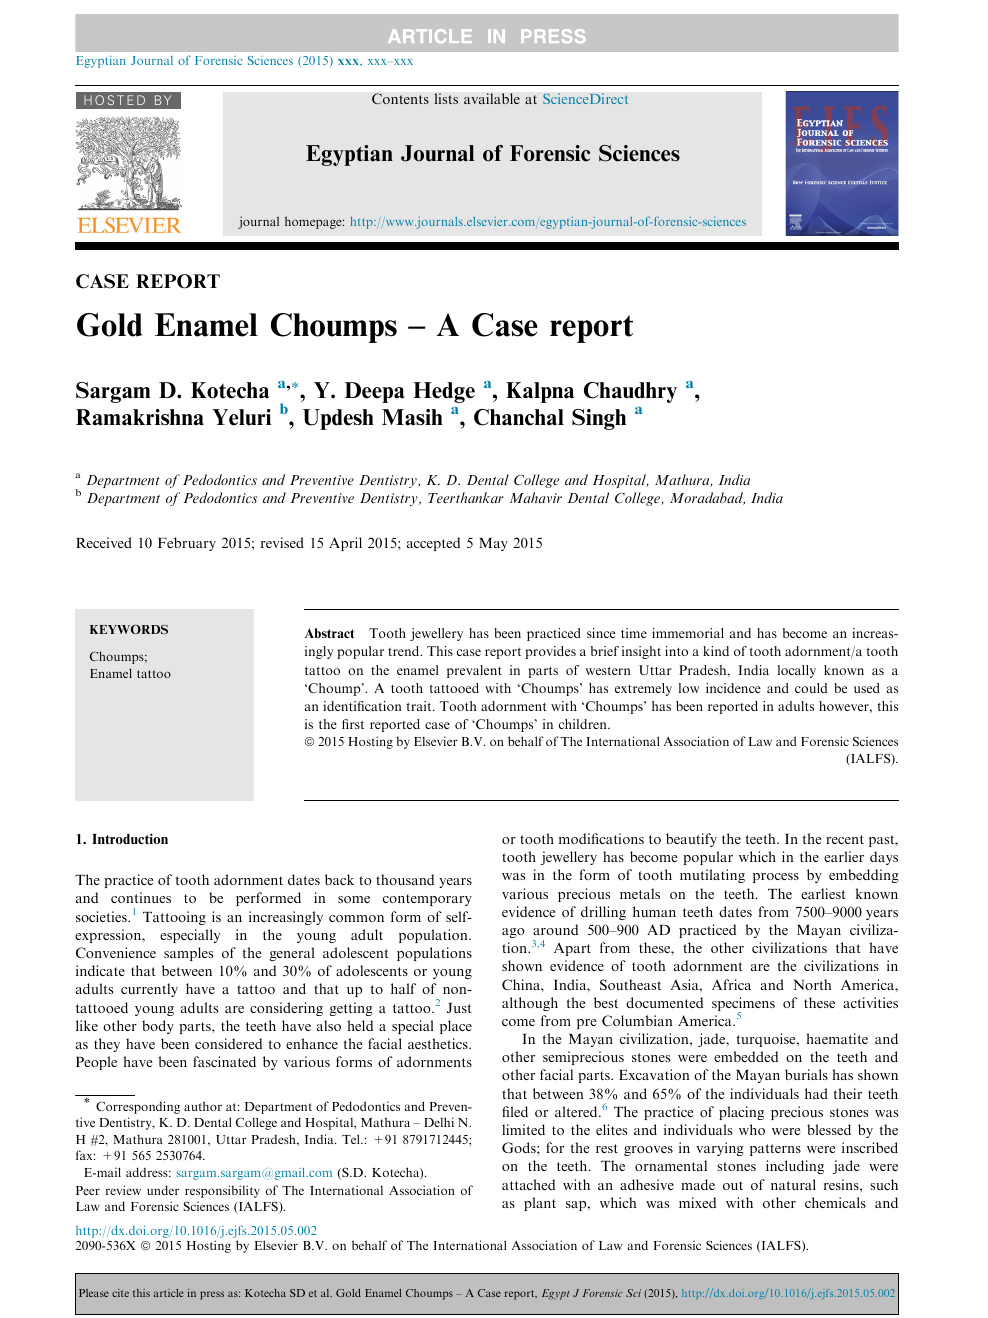 Gold Enamel Choumps – A Case report – topic of research